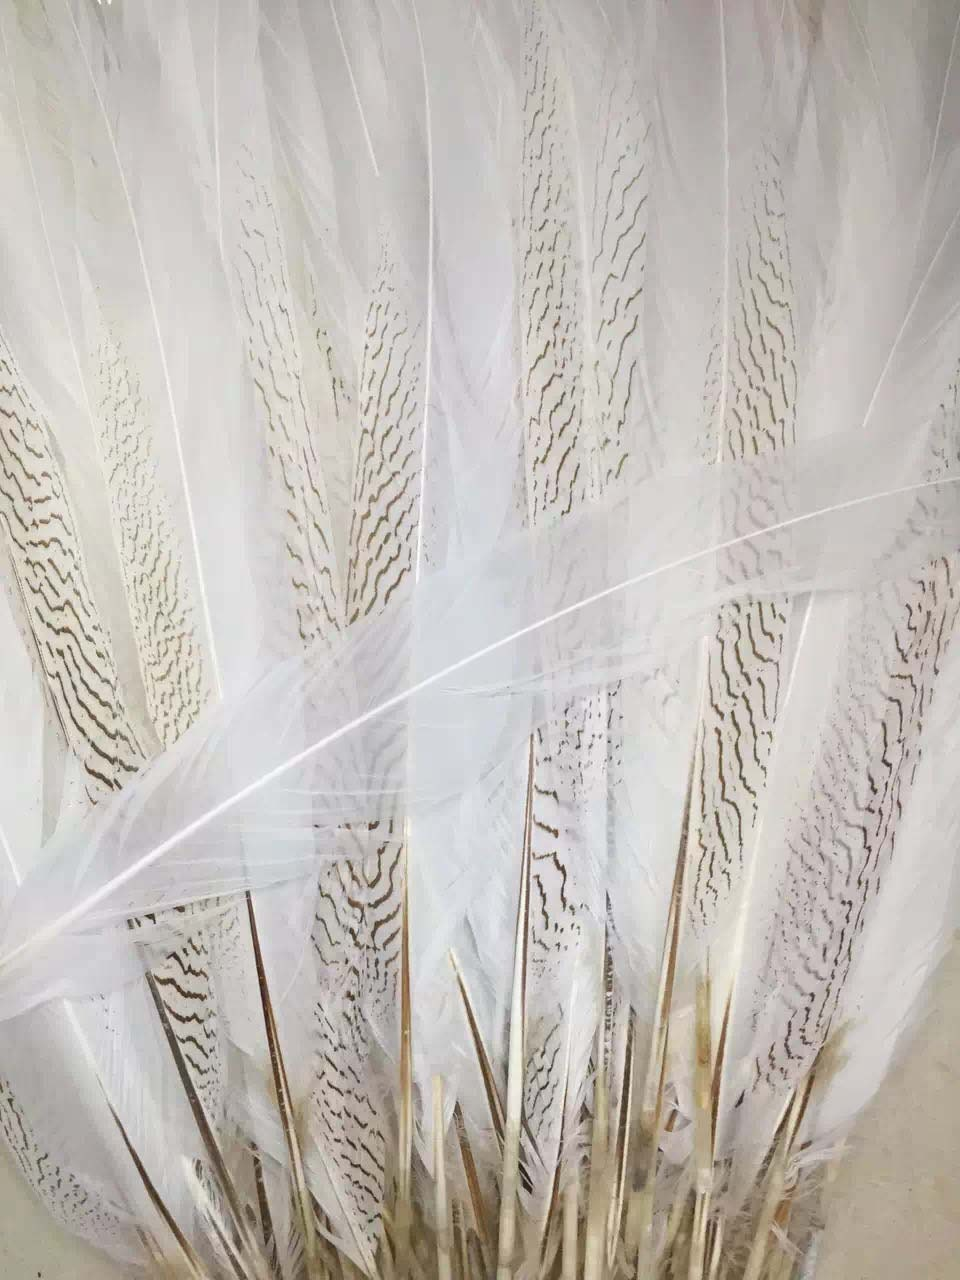 50pieces/lotTop Qu ality White Silver Pheasant Feathers natural ...